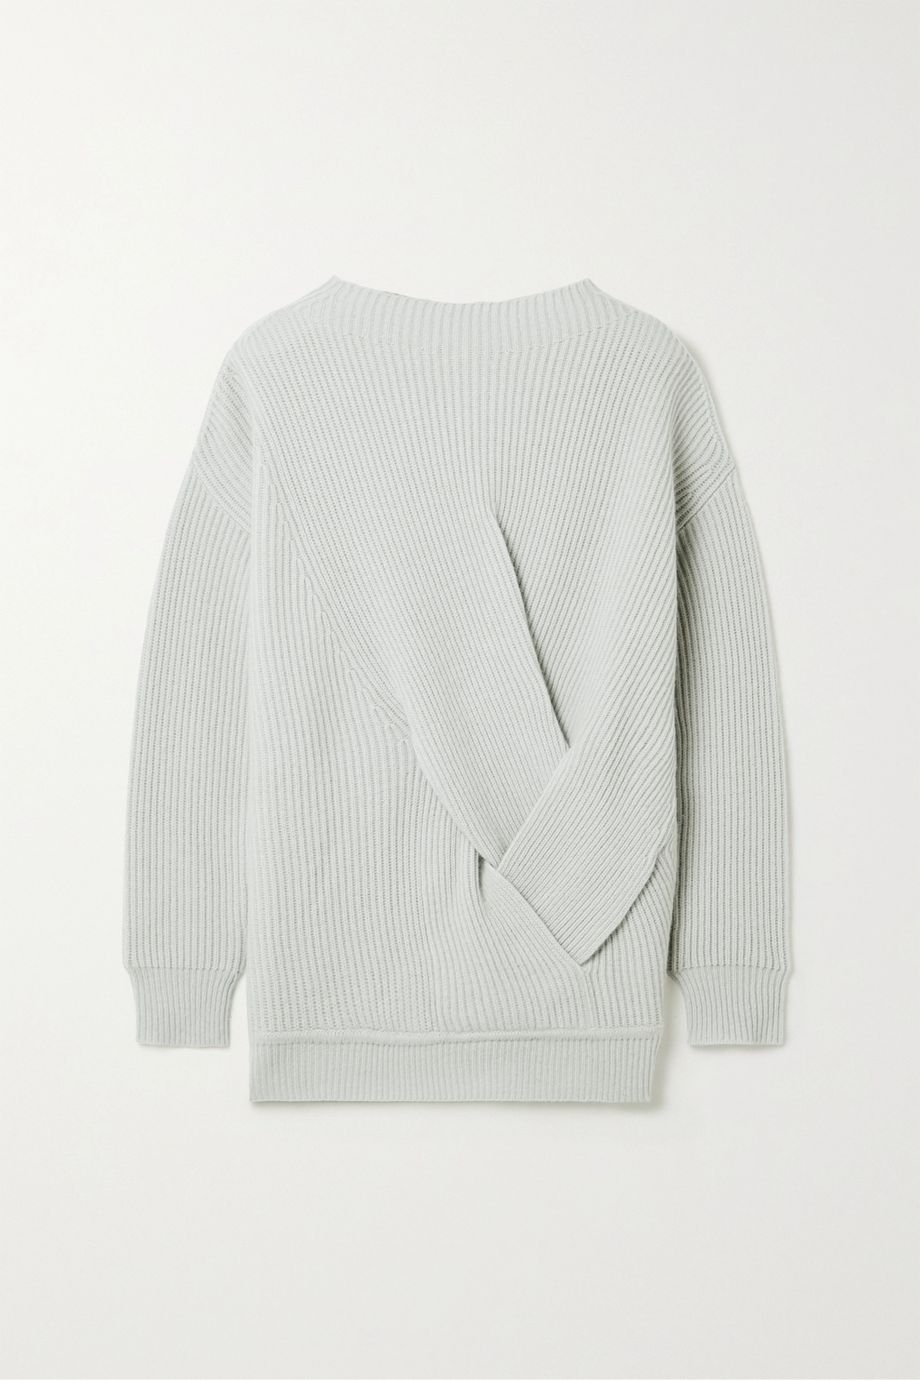 Max Mara Verace twisted ribbed wool and cashmere-blend sweater